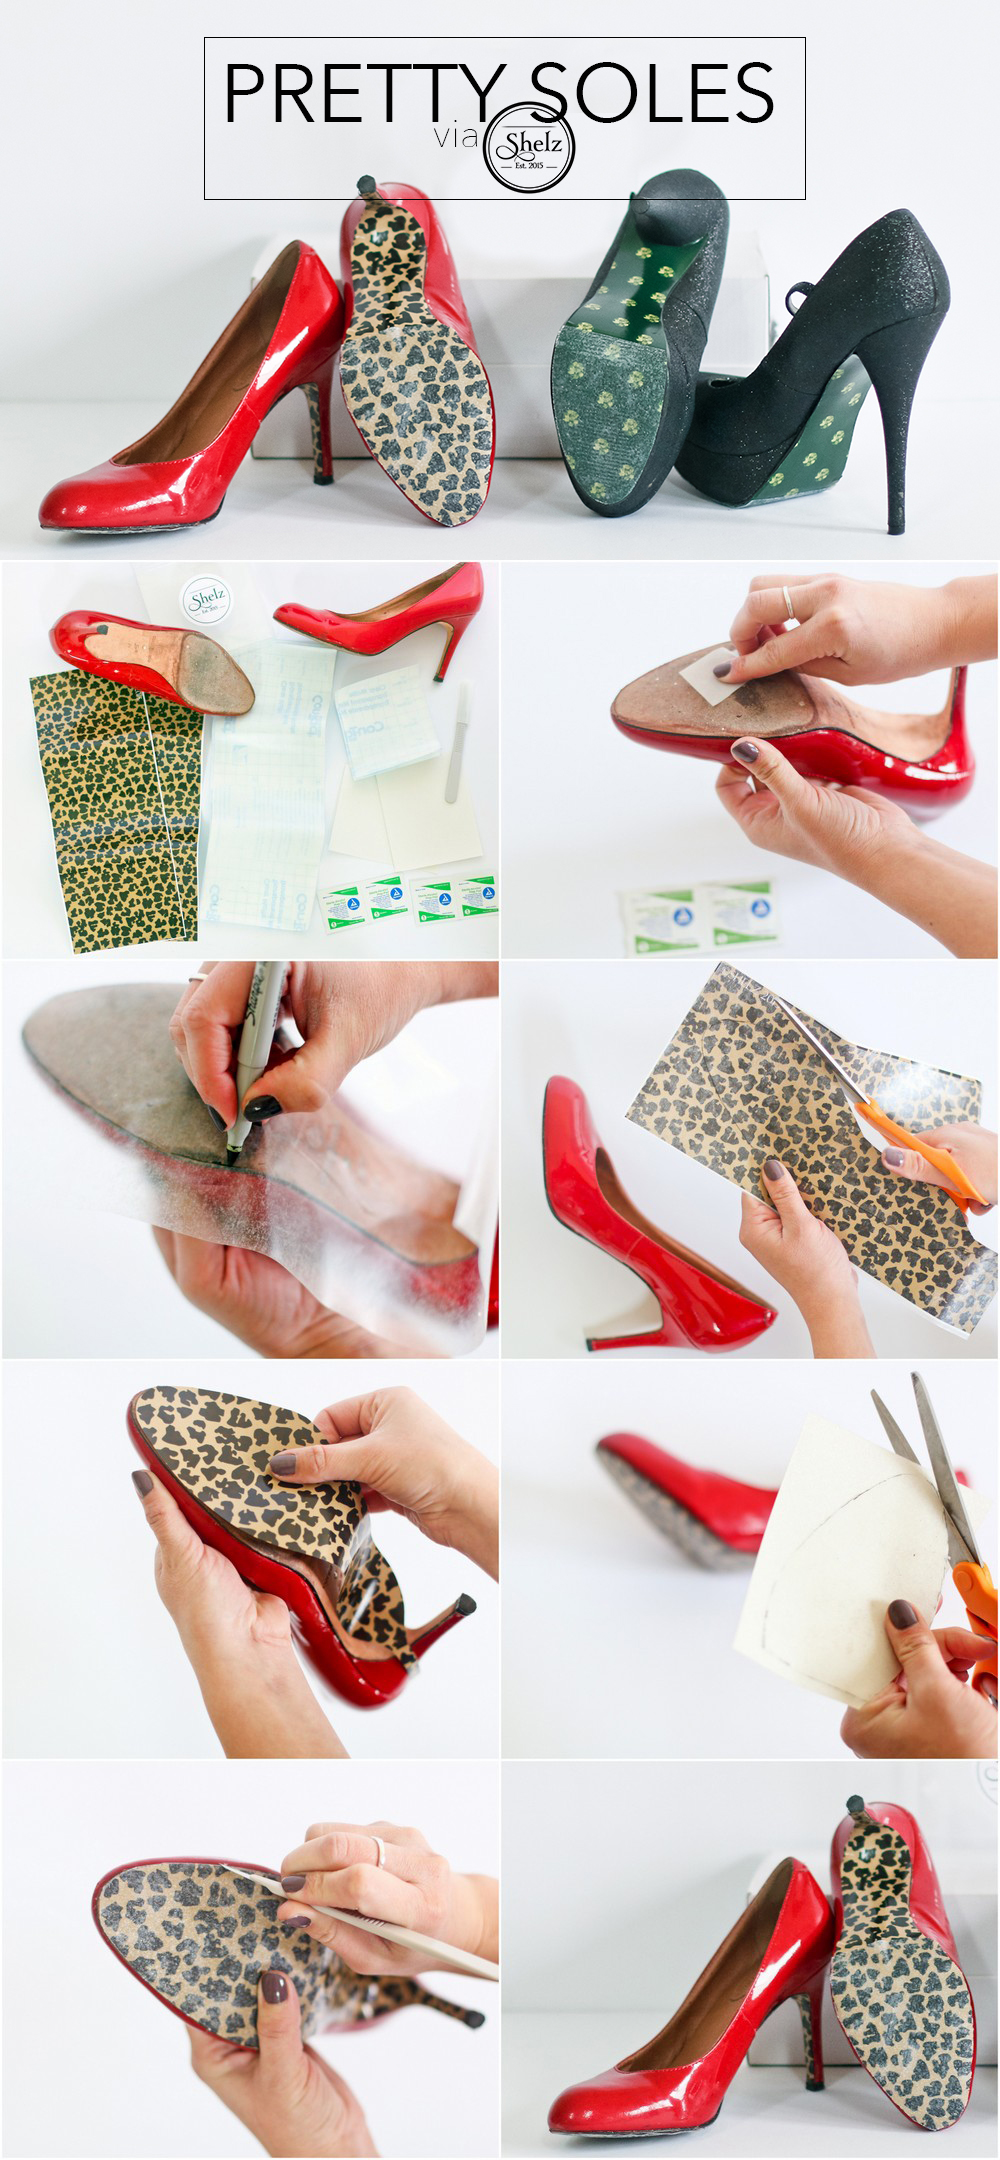 """Your Beautiful Sole"" Shelz Patterned Shoe Wraps"